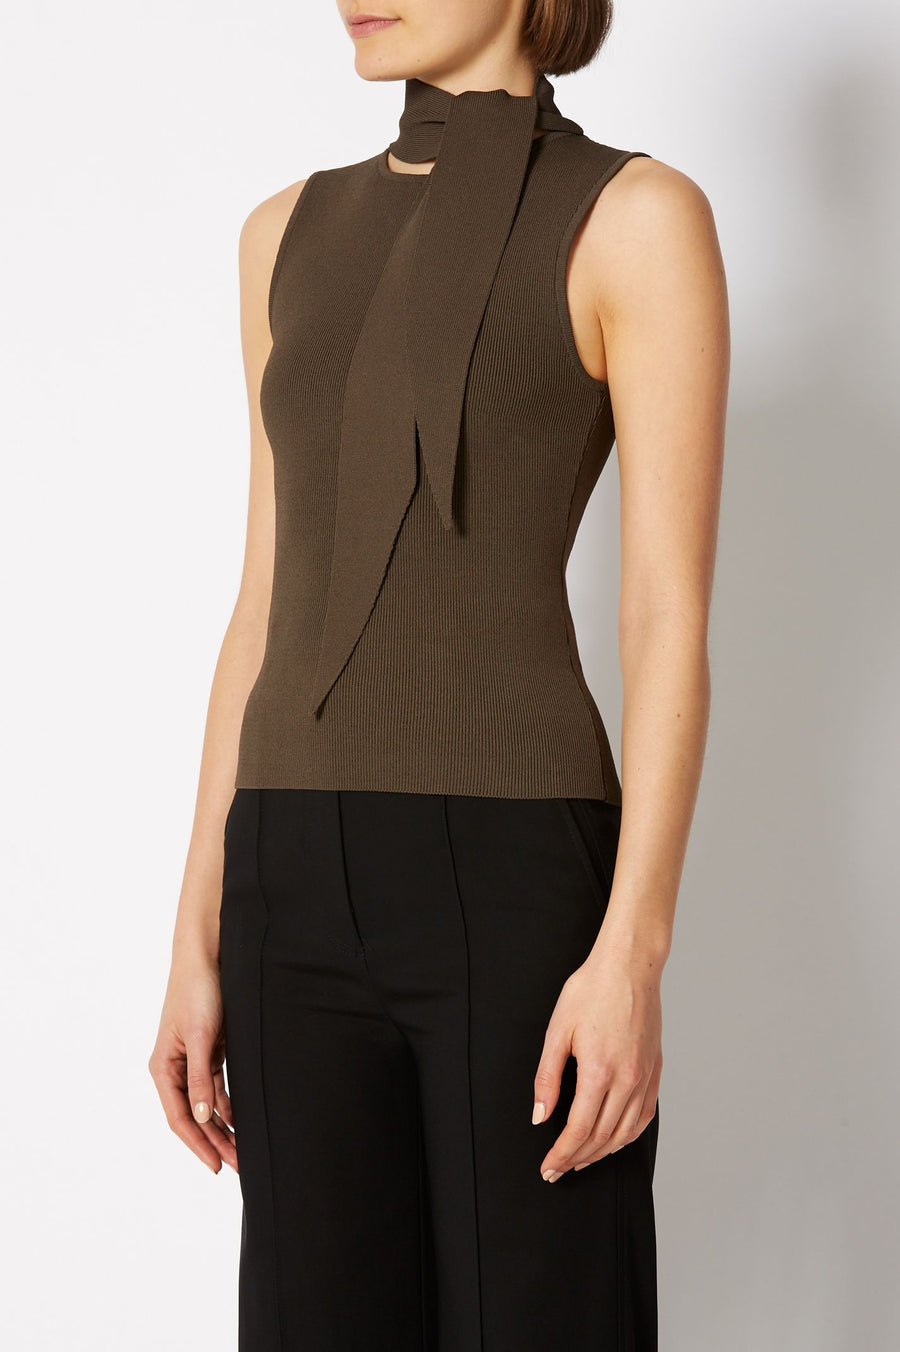 CREPE KNIT SLEEVLESS CRAVAT TANK, COLOR CAFE